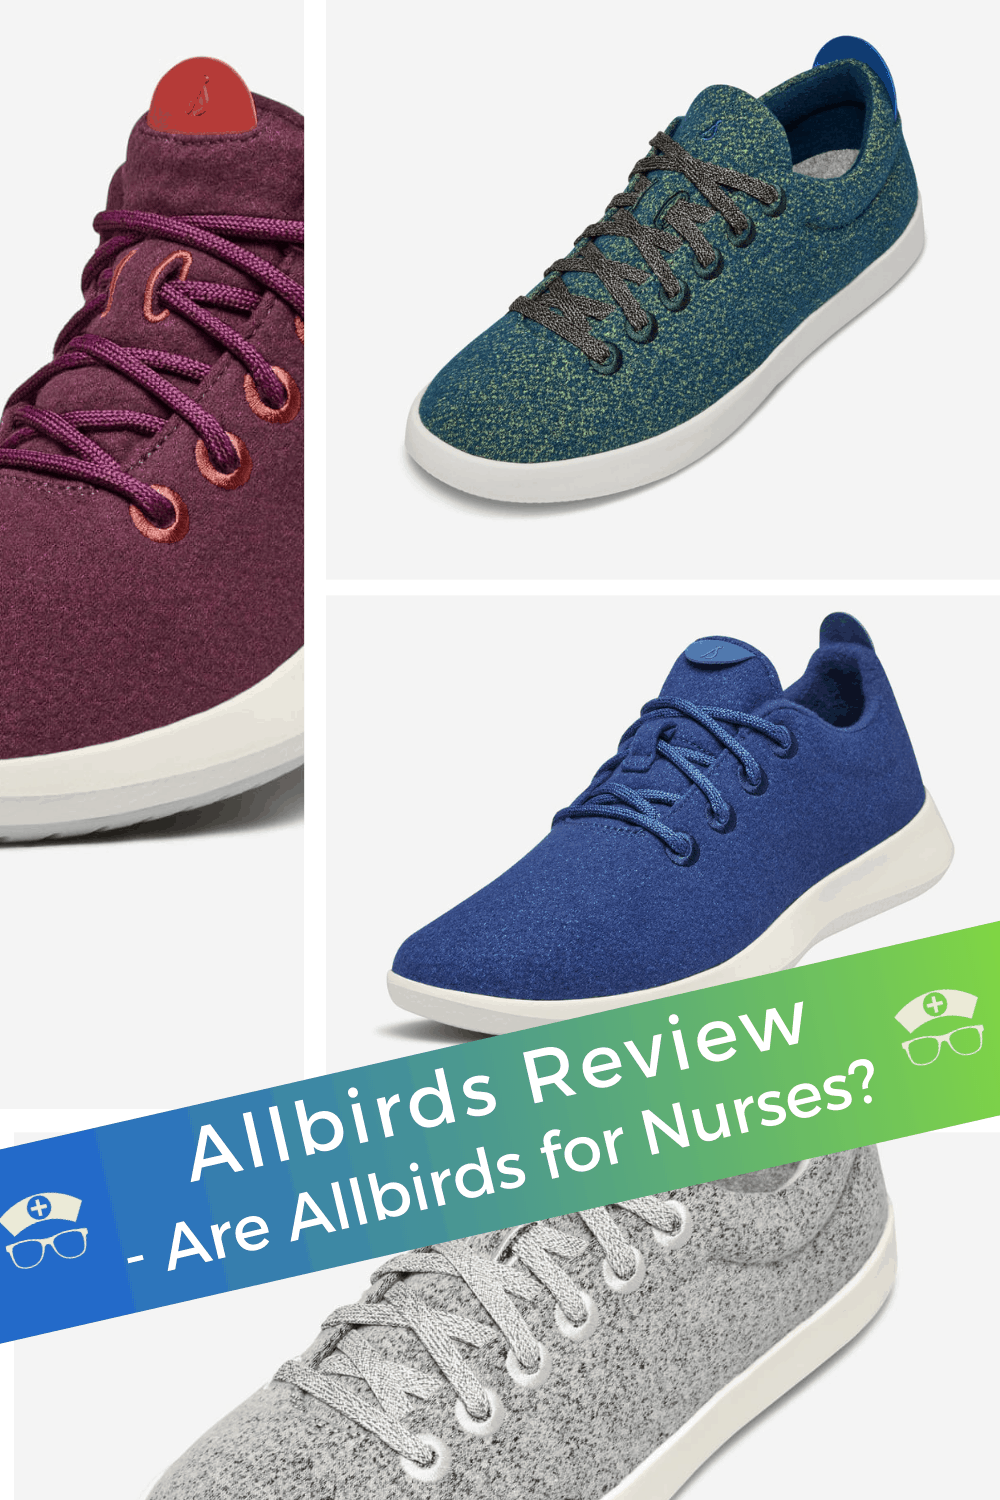 Allbirds Review - Are Allbirds for Nurses? Looking for an Allbirds review? Allbirds are one of the most popular shoes on the market, let's look at if Allbirds are for nurses. #thenerdynurse #nurse #nurses #nurseshoes #allbirdshoes #shoes #nursingshoes